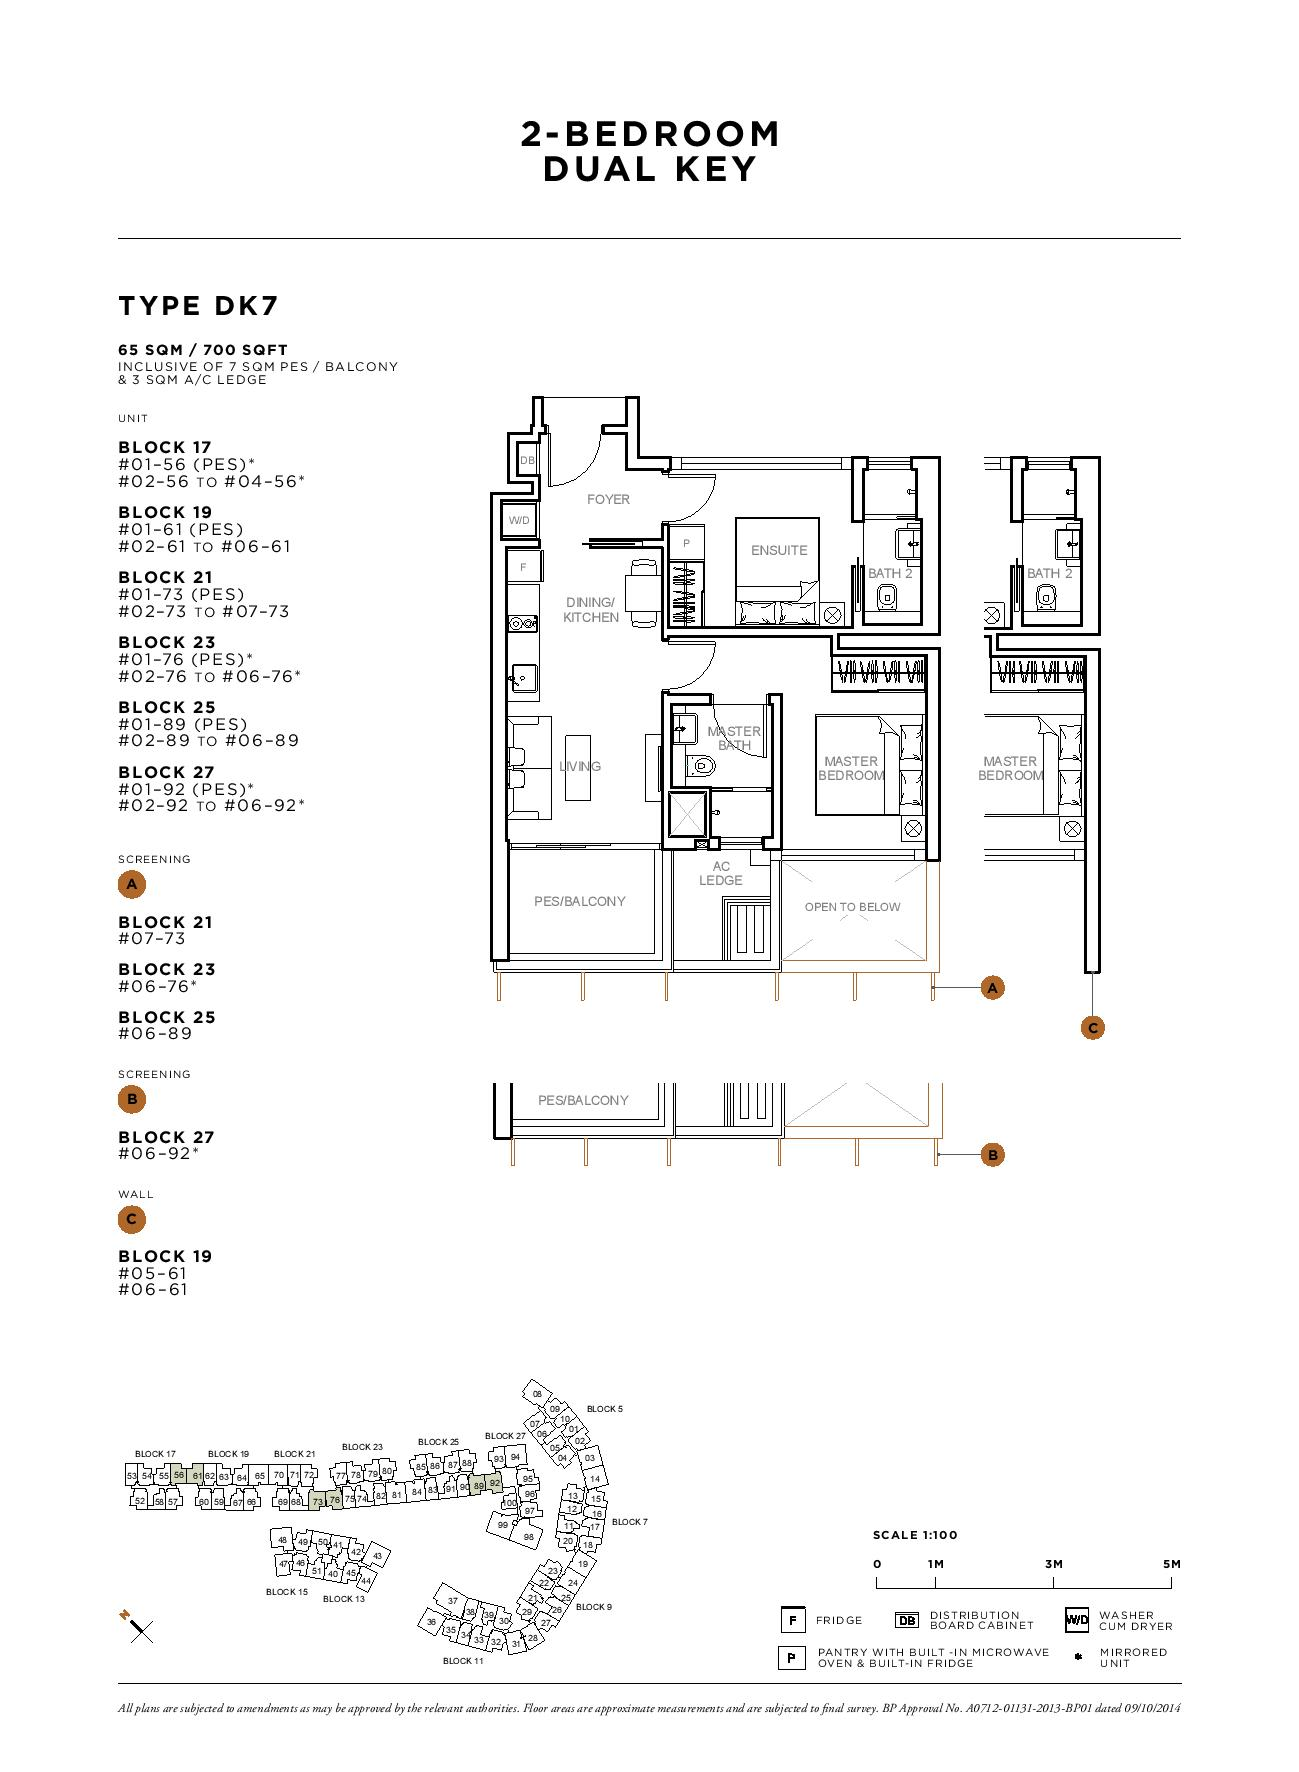 Sophia Hills 2 Bedroom Dual Key Type DK7 Floor Plans